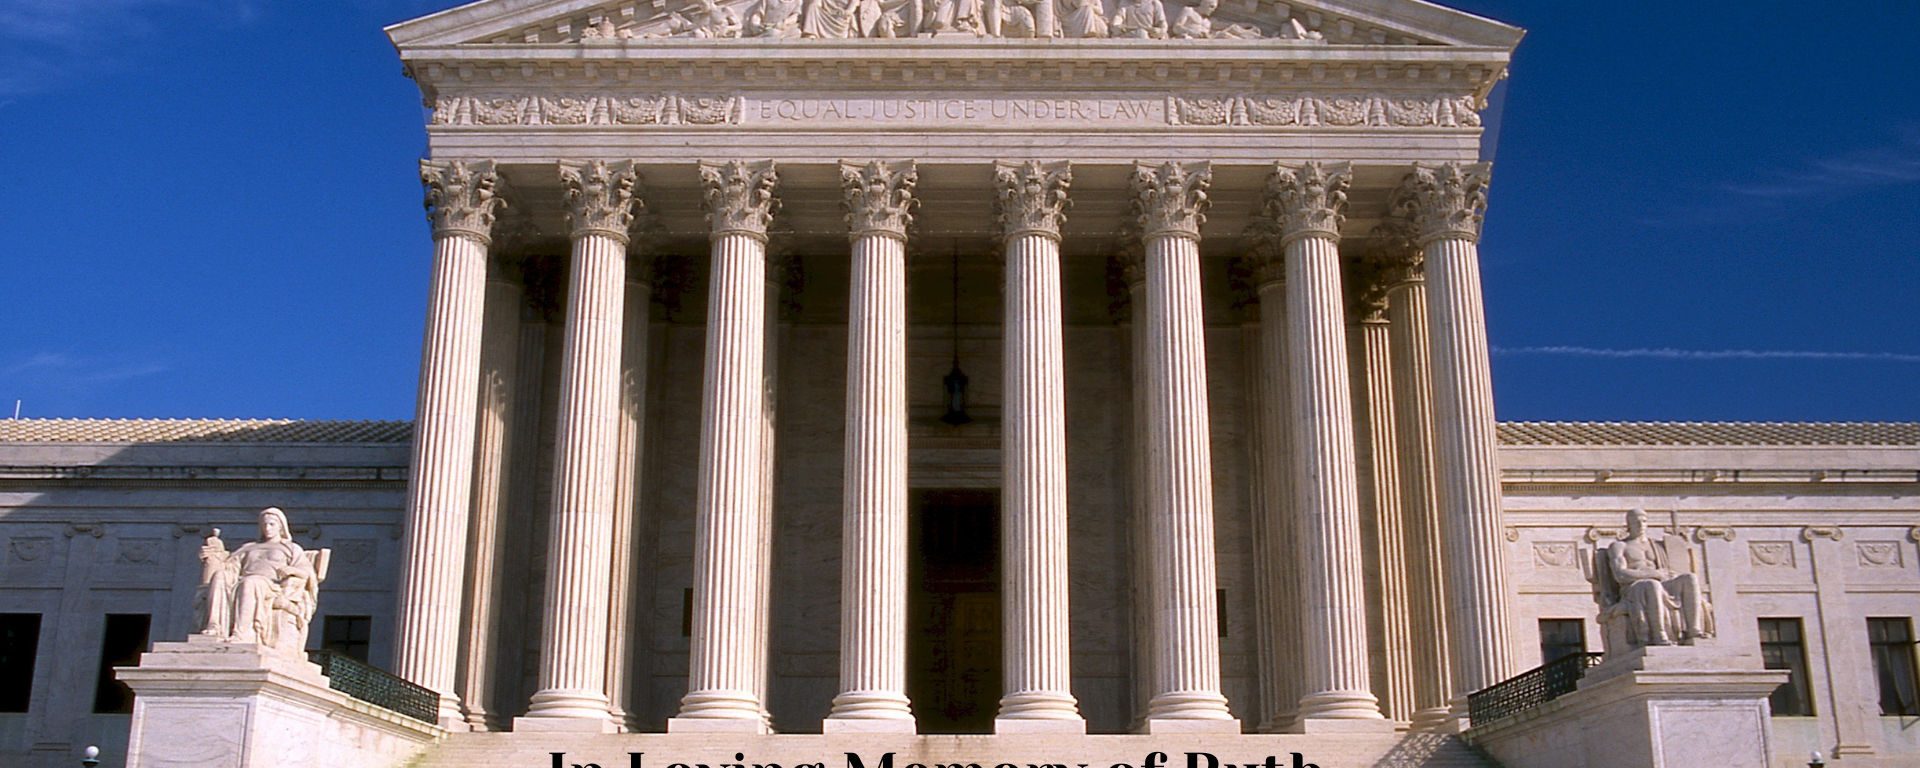 A picture of the Supreme Court in Washington